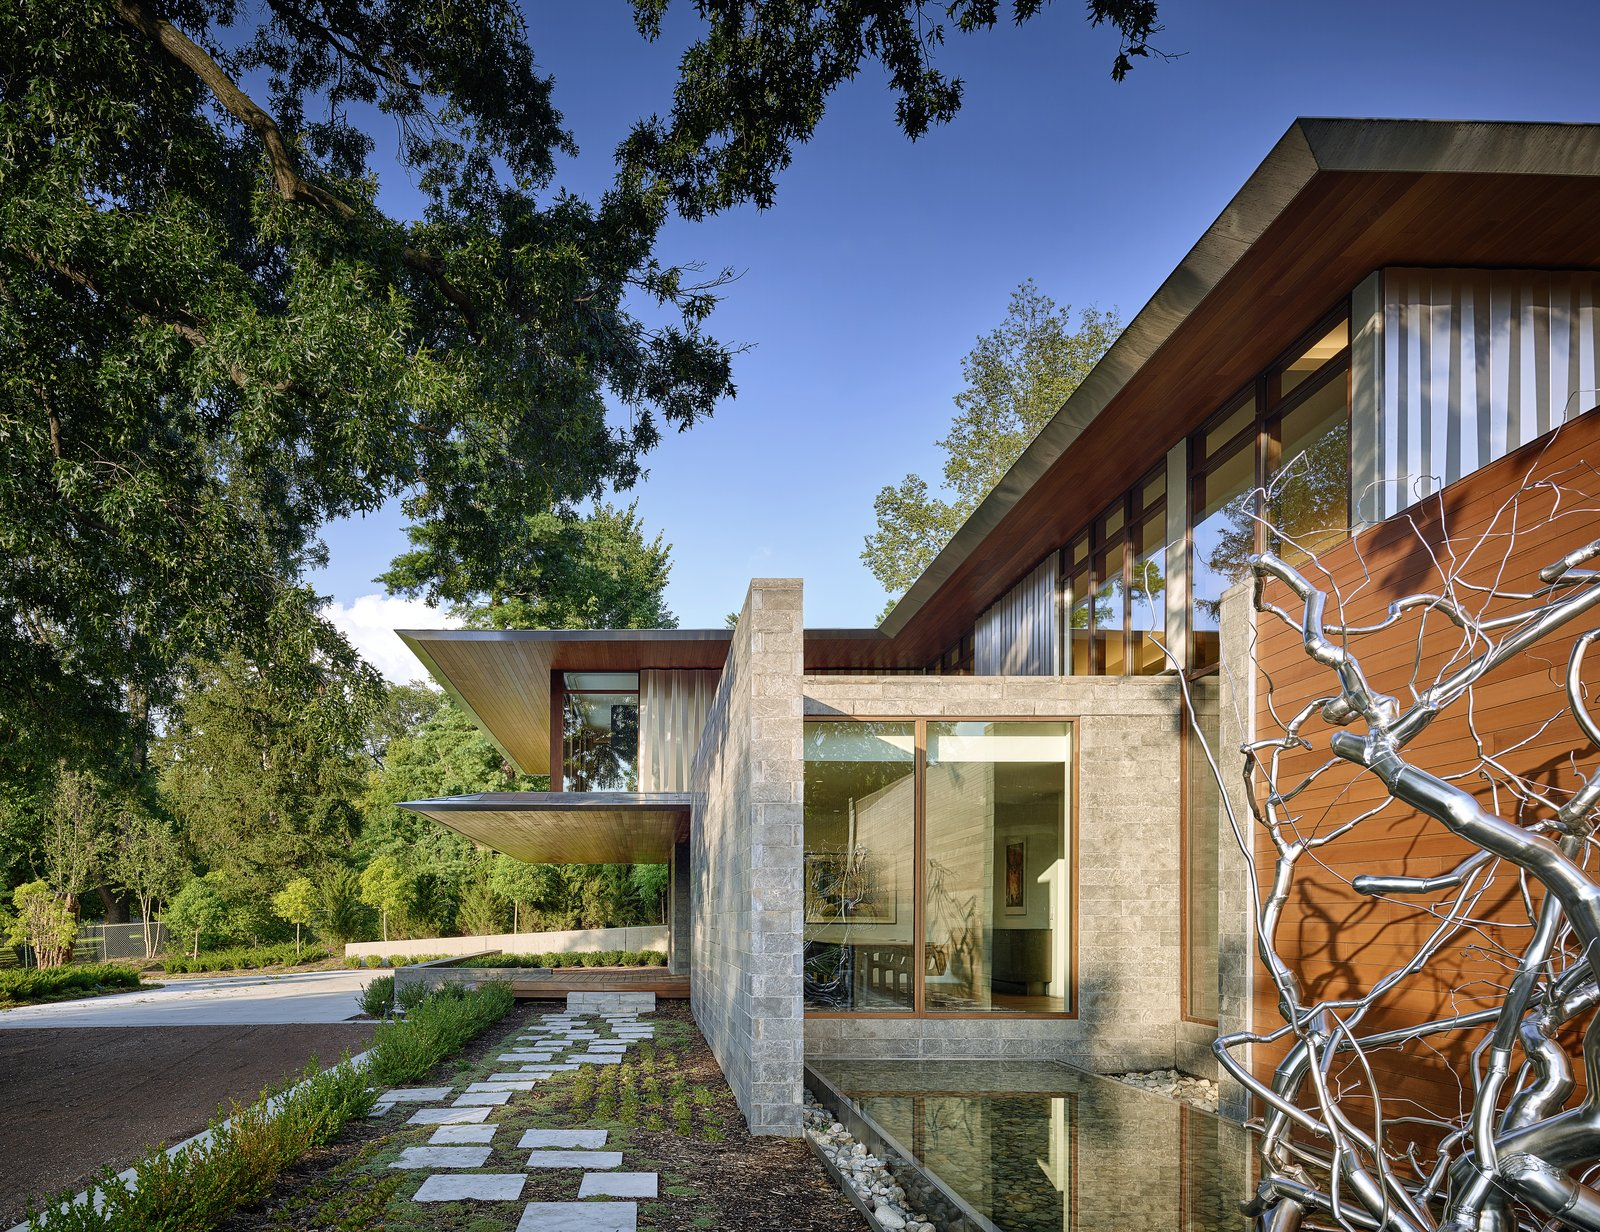 Exterior, Wood Siding Material, Stone Siding Material, Metal Roof Material, House Building Type, Metal Siding Material, Flat RoofLine, and Brick Siding Material House and art gallery, this private residence is full of special moments of awe and admiration.  Artery House